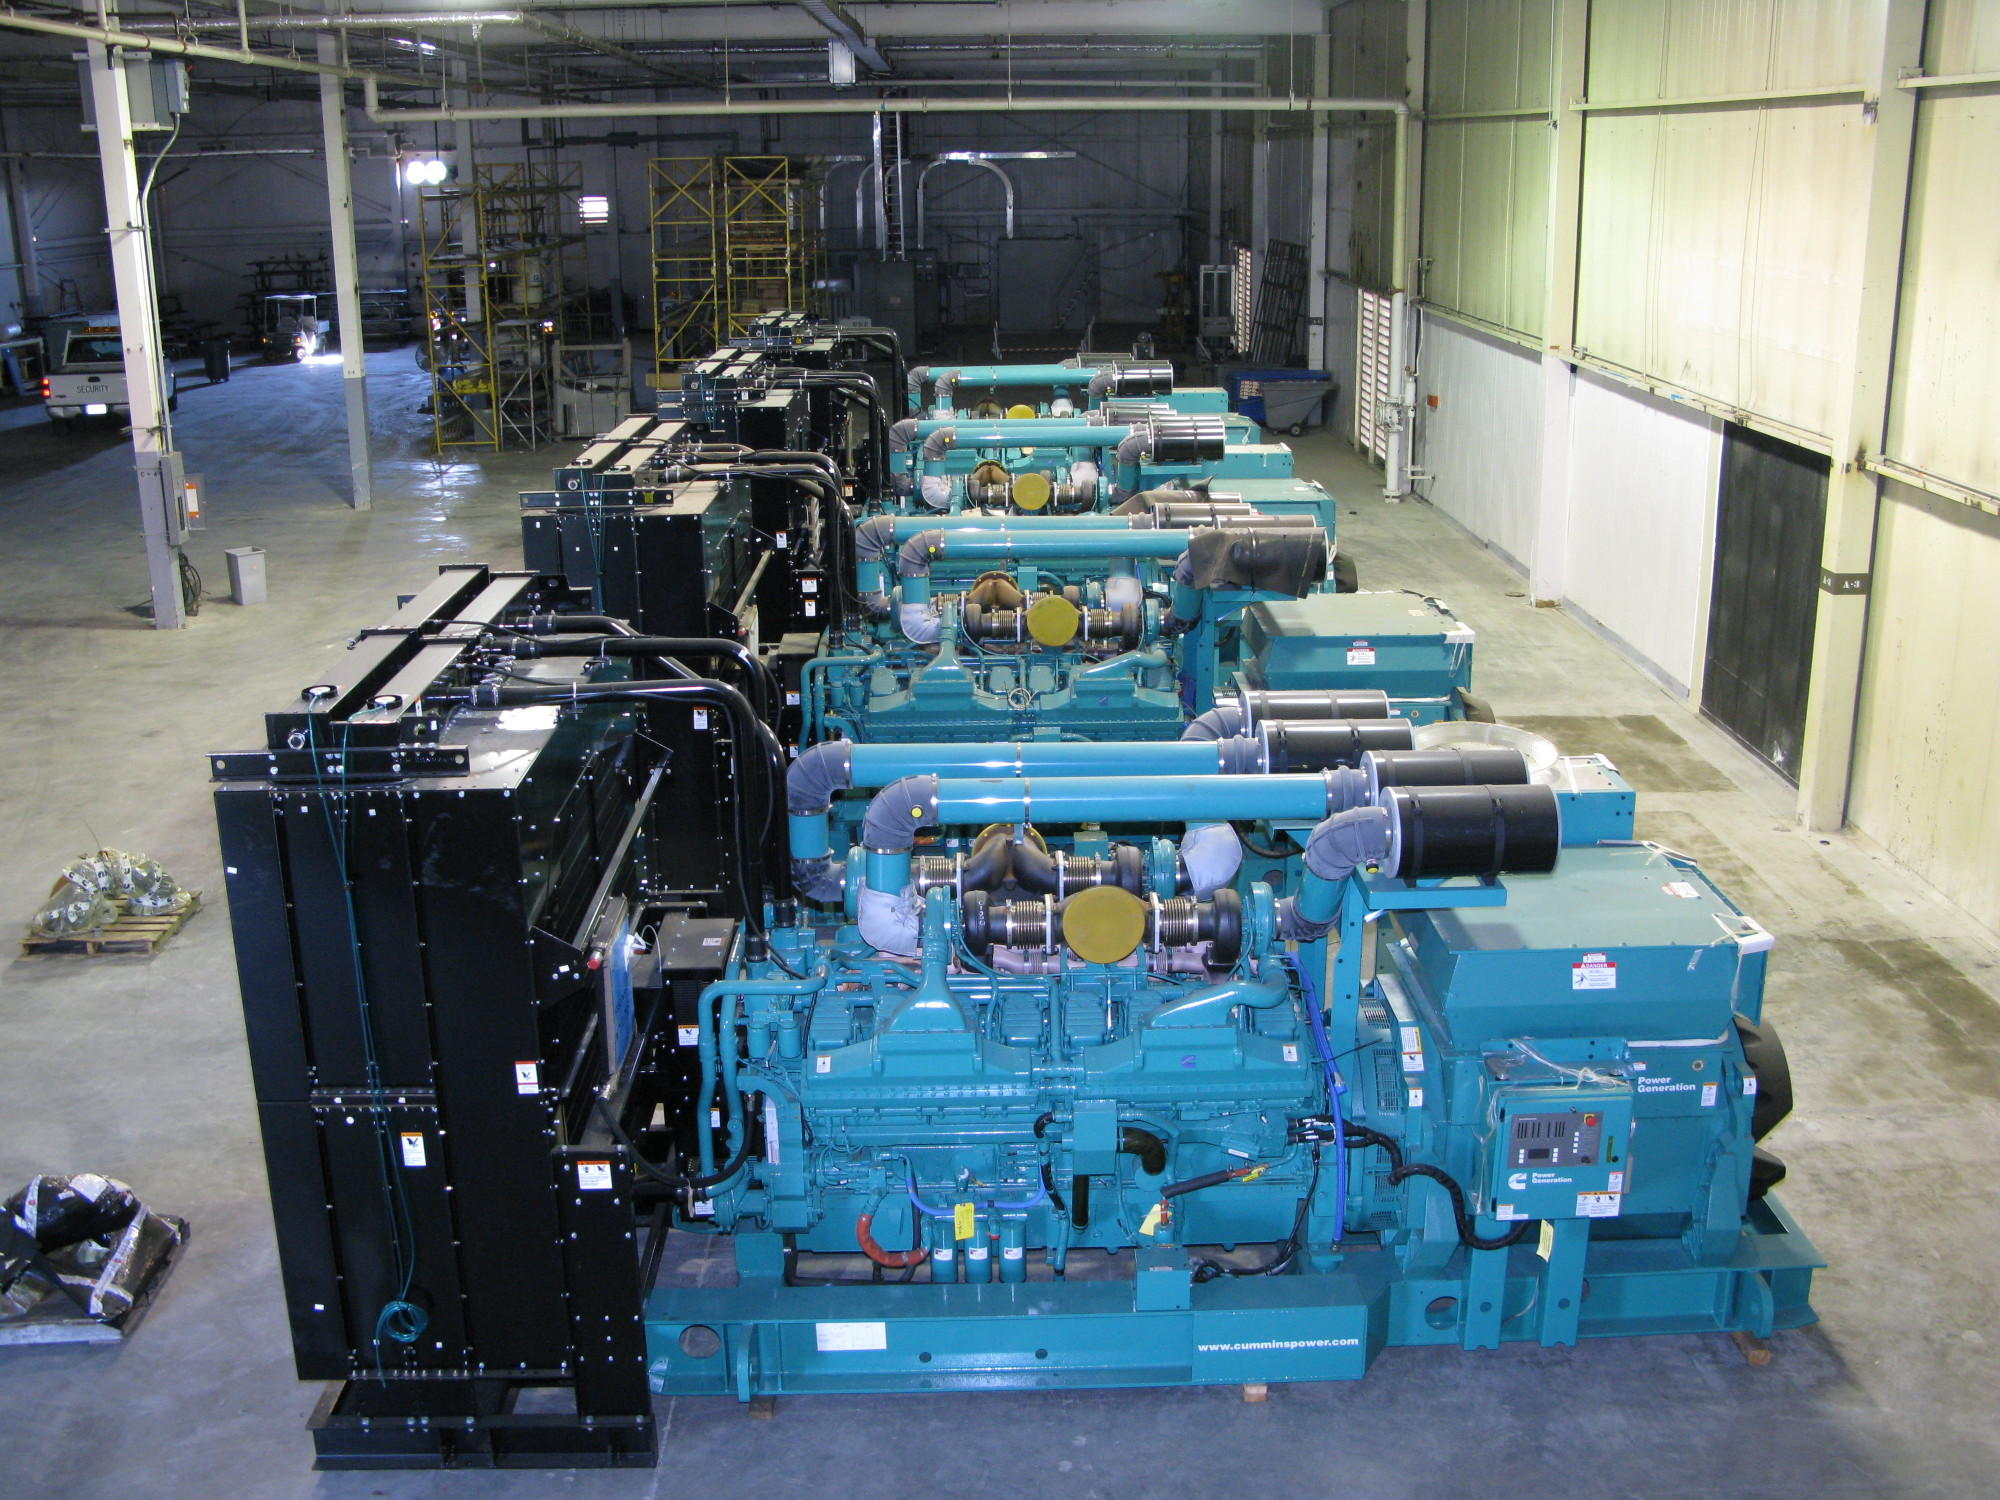 power-generator-electric-generator-equipment-1